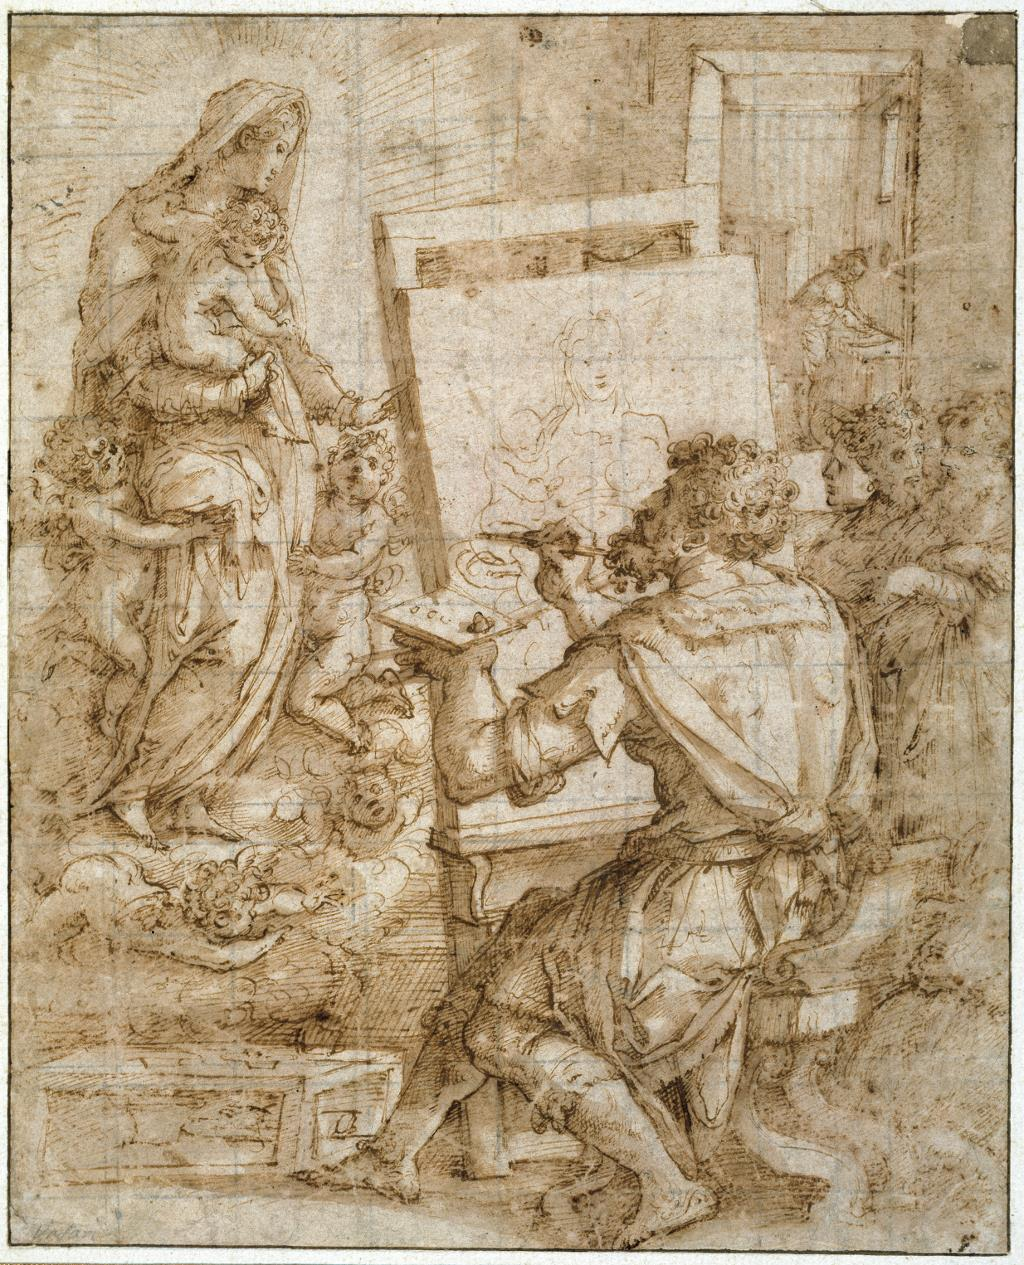 Drawing in the 16th century